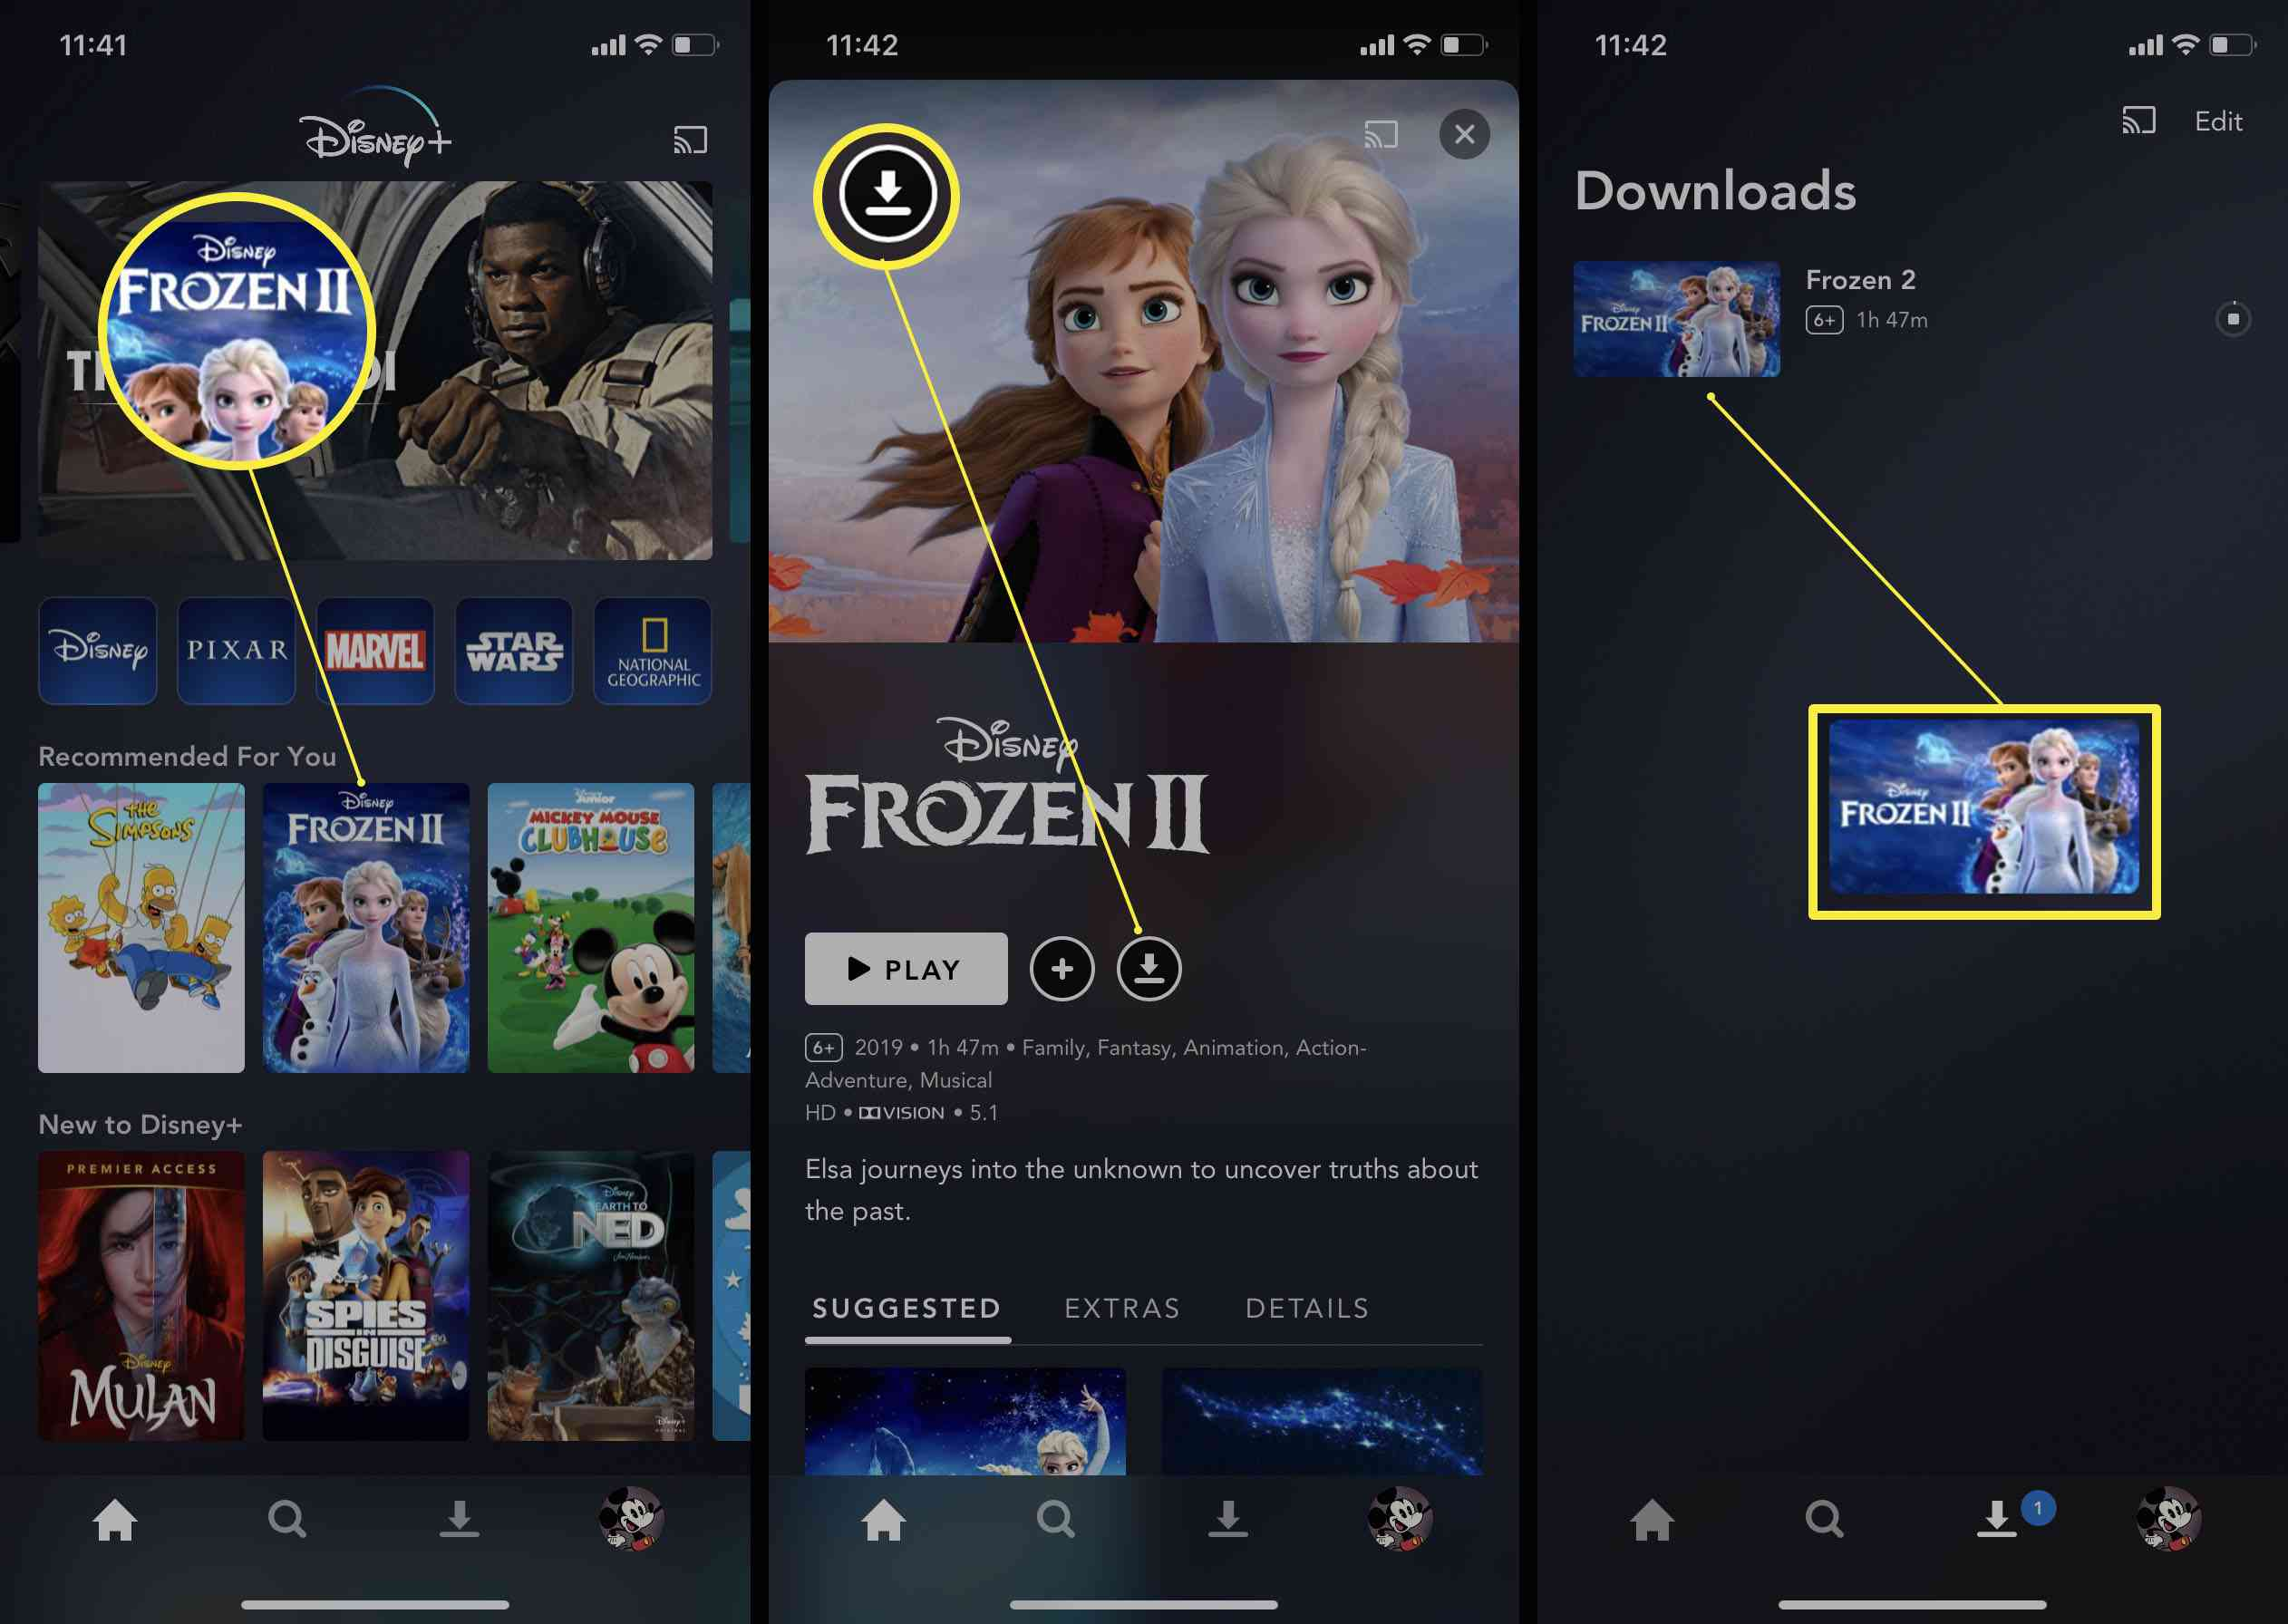 Steps needed in the Disney+ app to download a movie for offline viewing